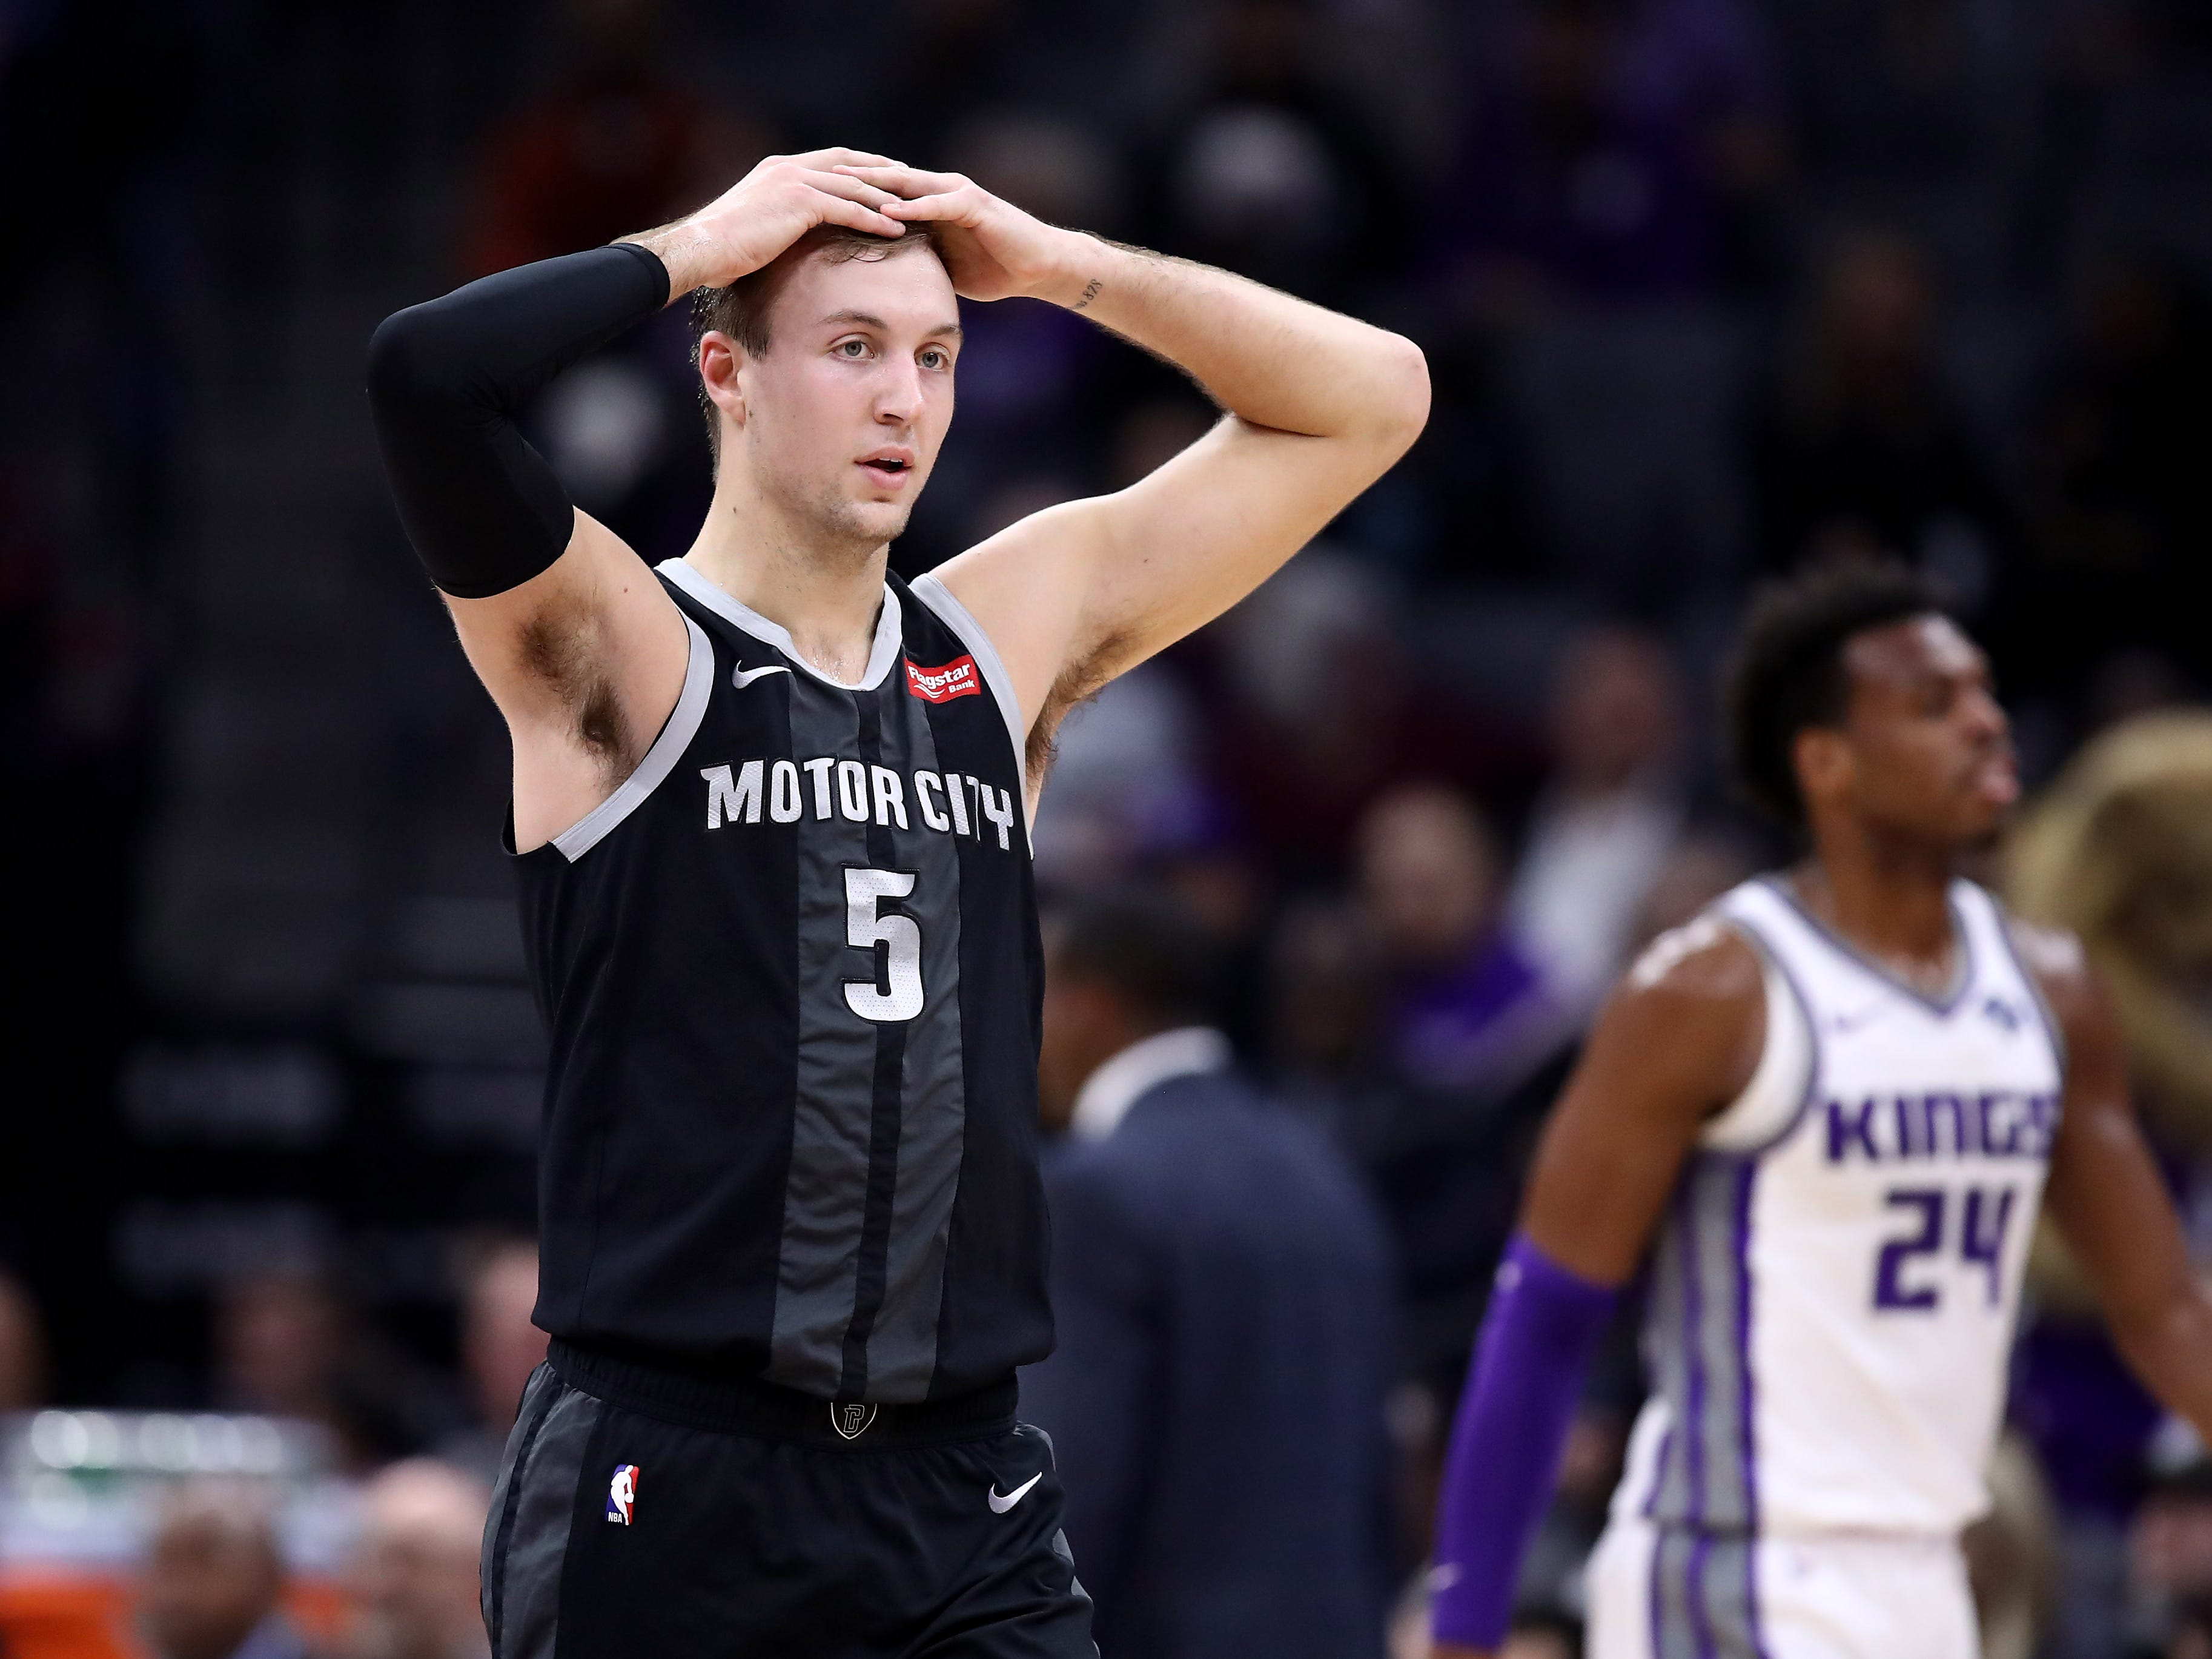 Detroit Pistons lose at Sacramento Kings, 112-102; frustration boils over